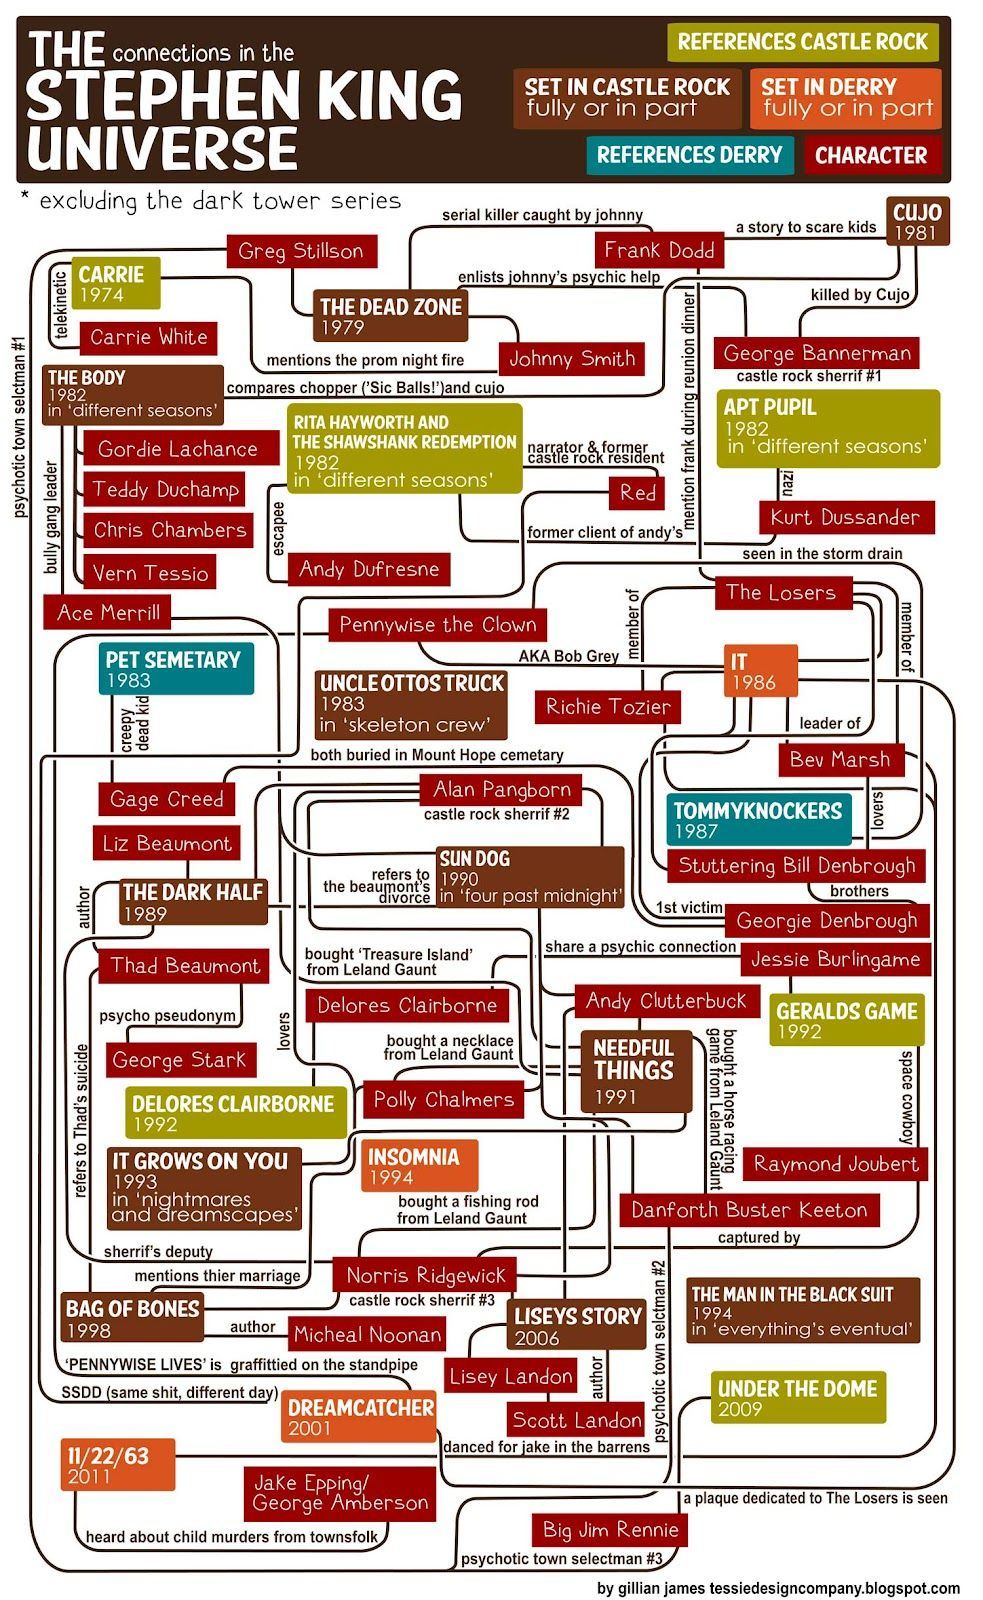 Obsessive Stephen King Fans Can Test Their Obscure Character Knowledge With The Brand New Universe Flowchart Designer Gillian James Has